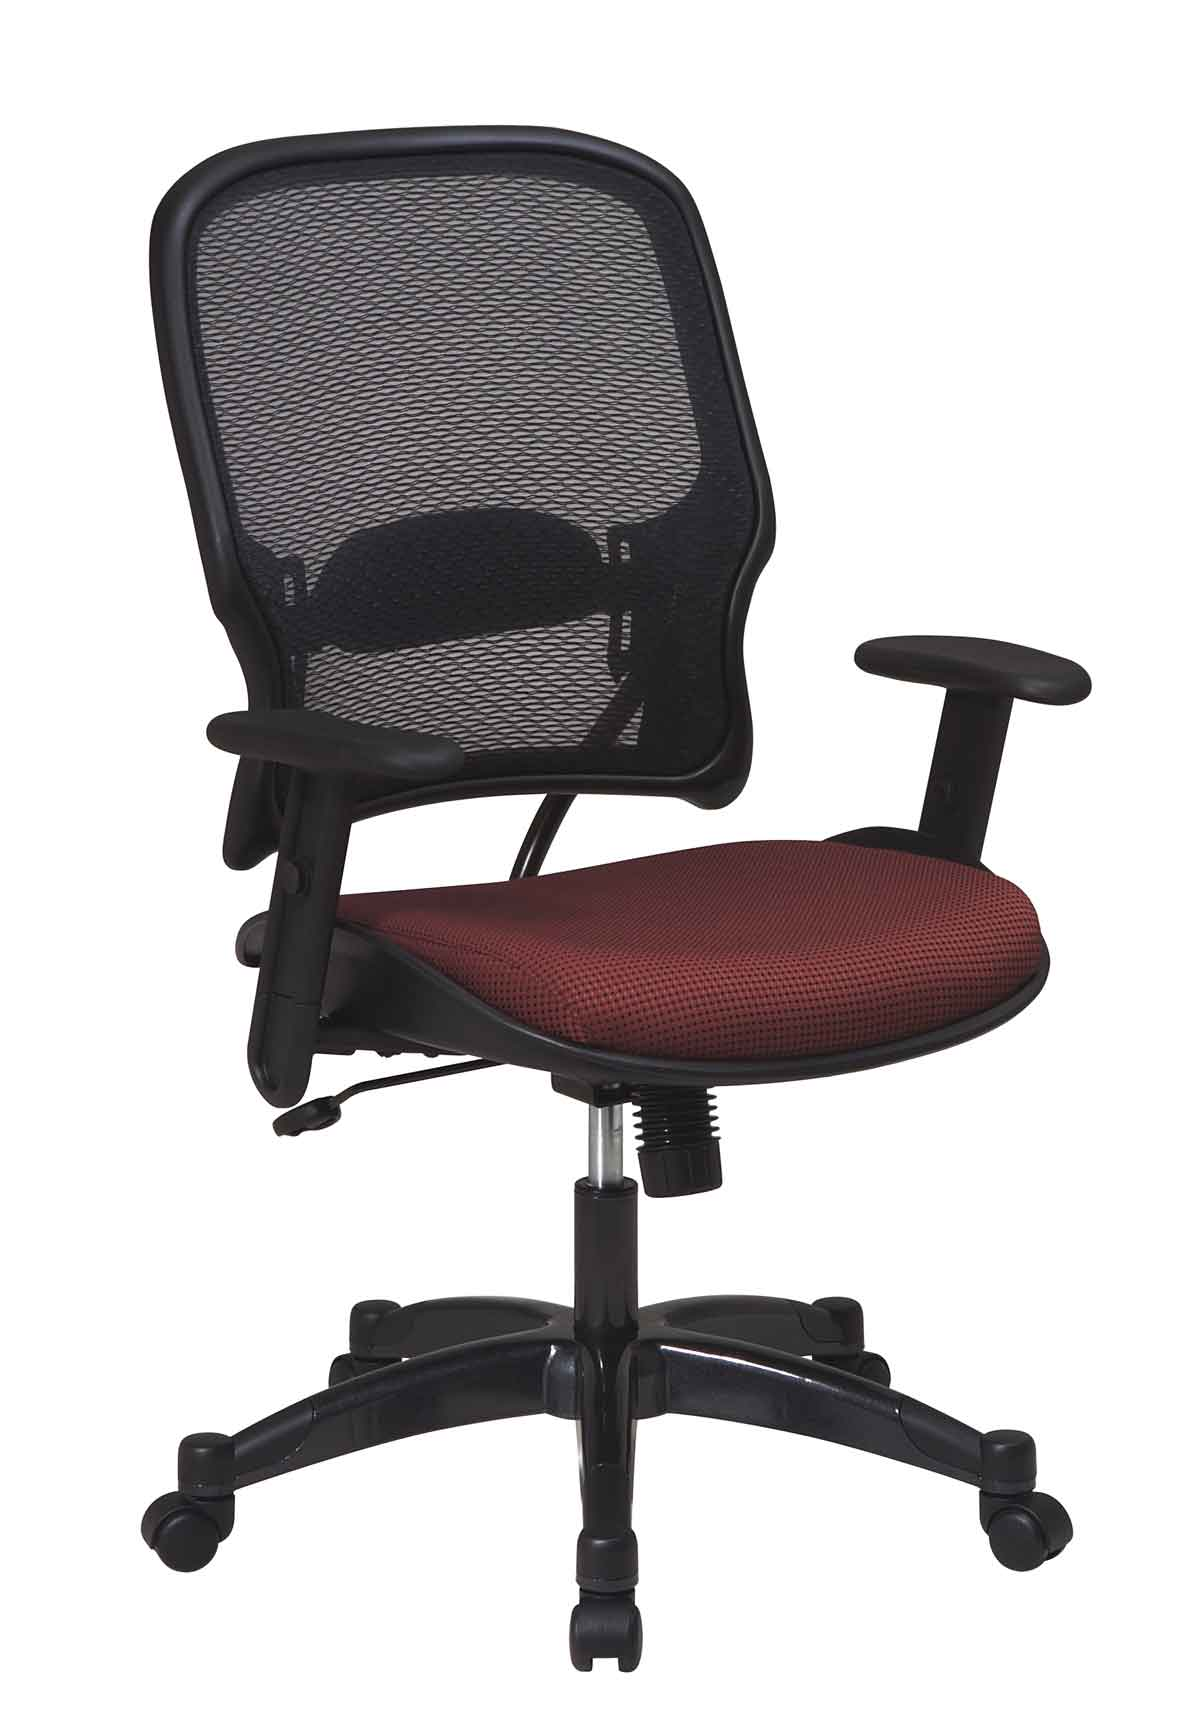 Desk Chairs Cheap Desk Chairs Online For Office